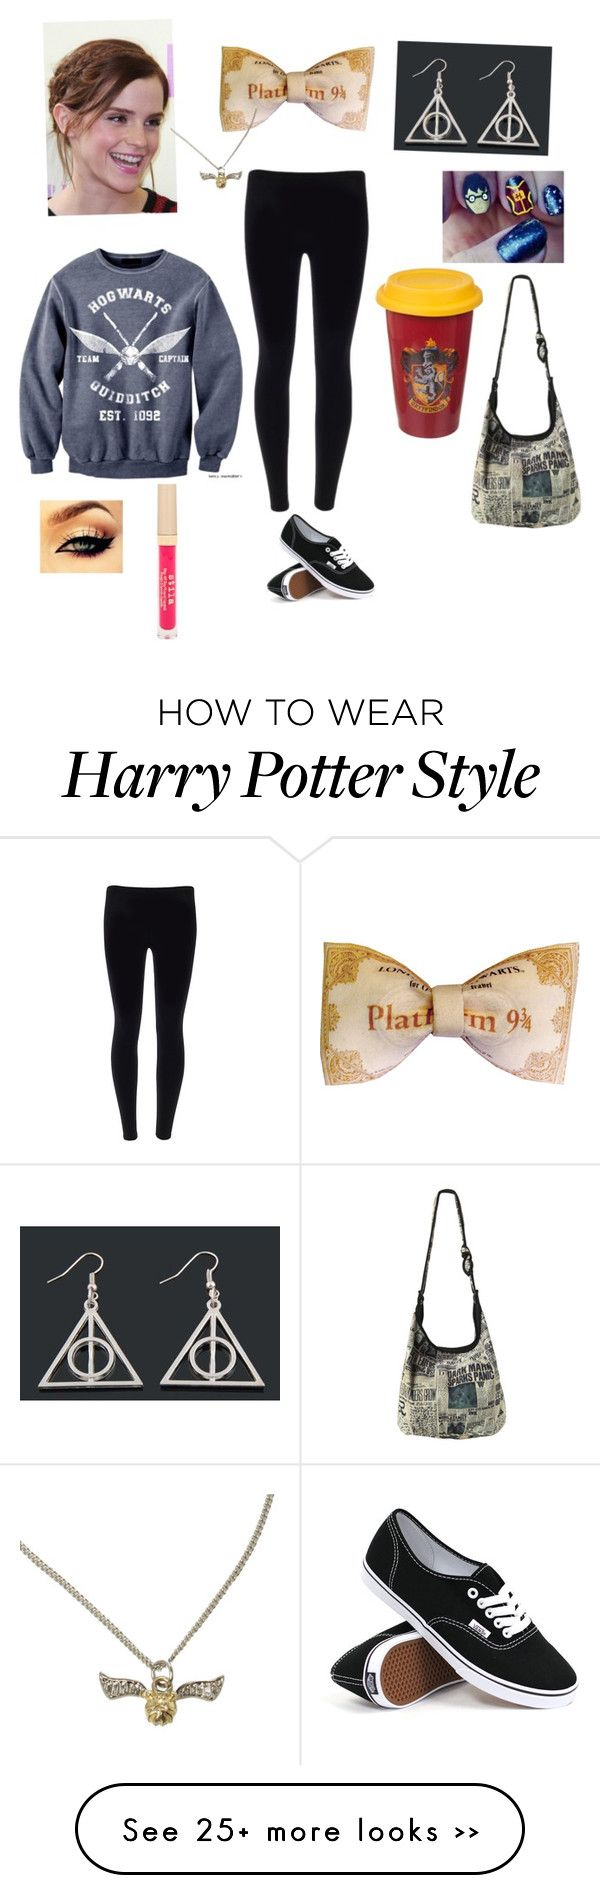 """Rian's Harry Potter"" by luna1116 on Polyvore"